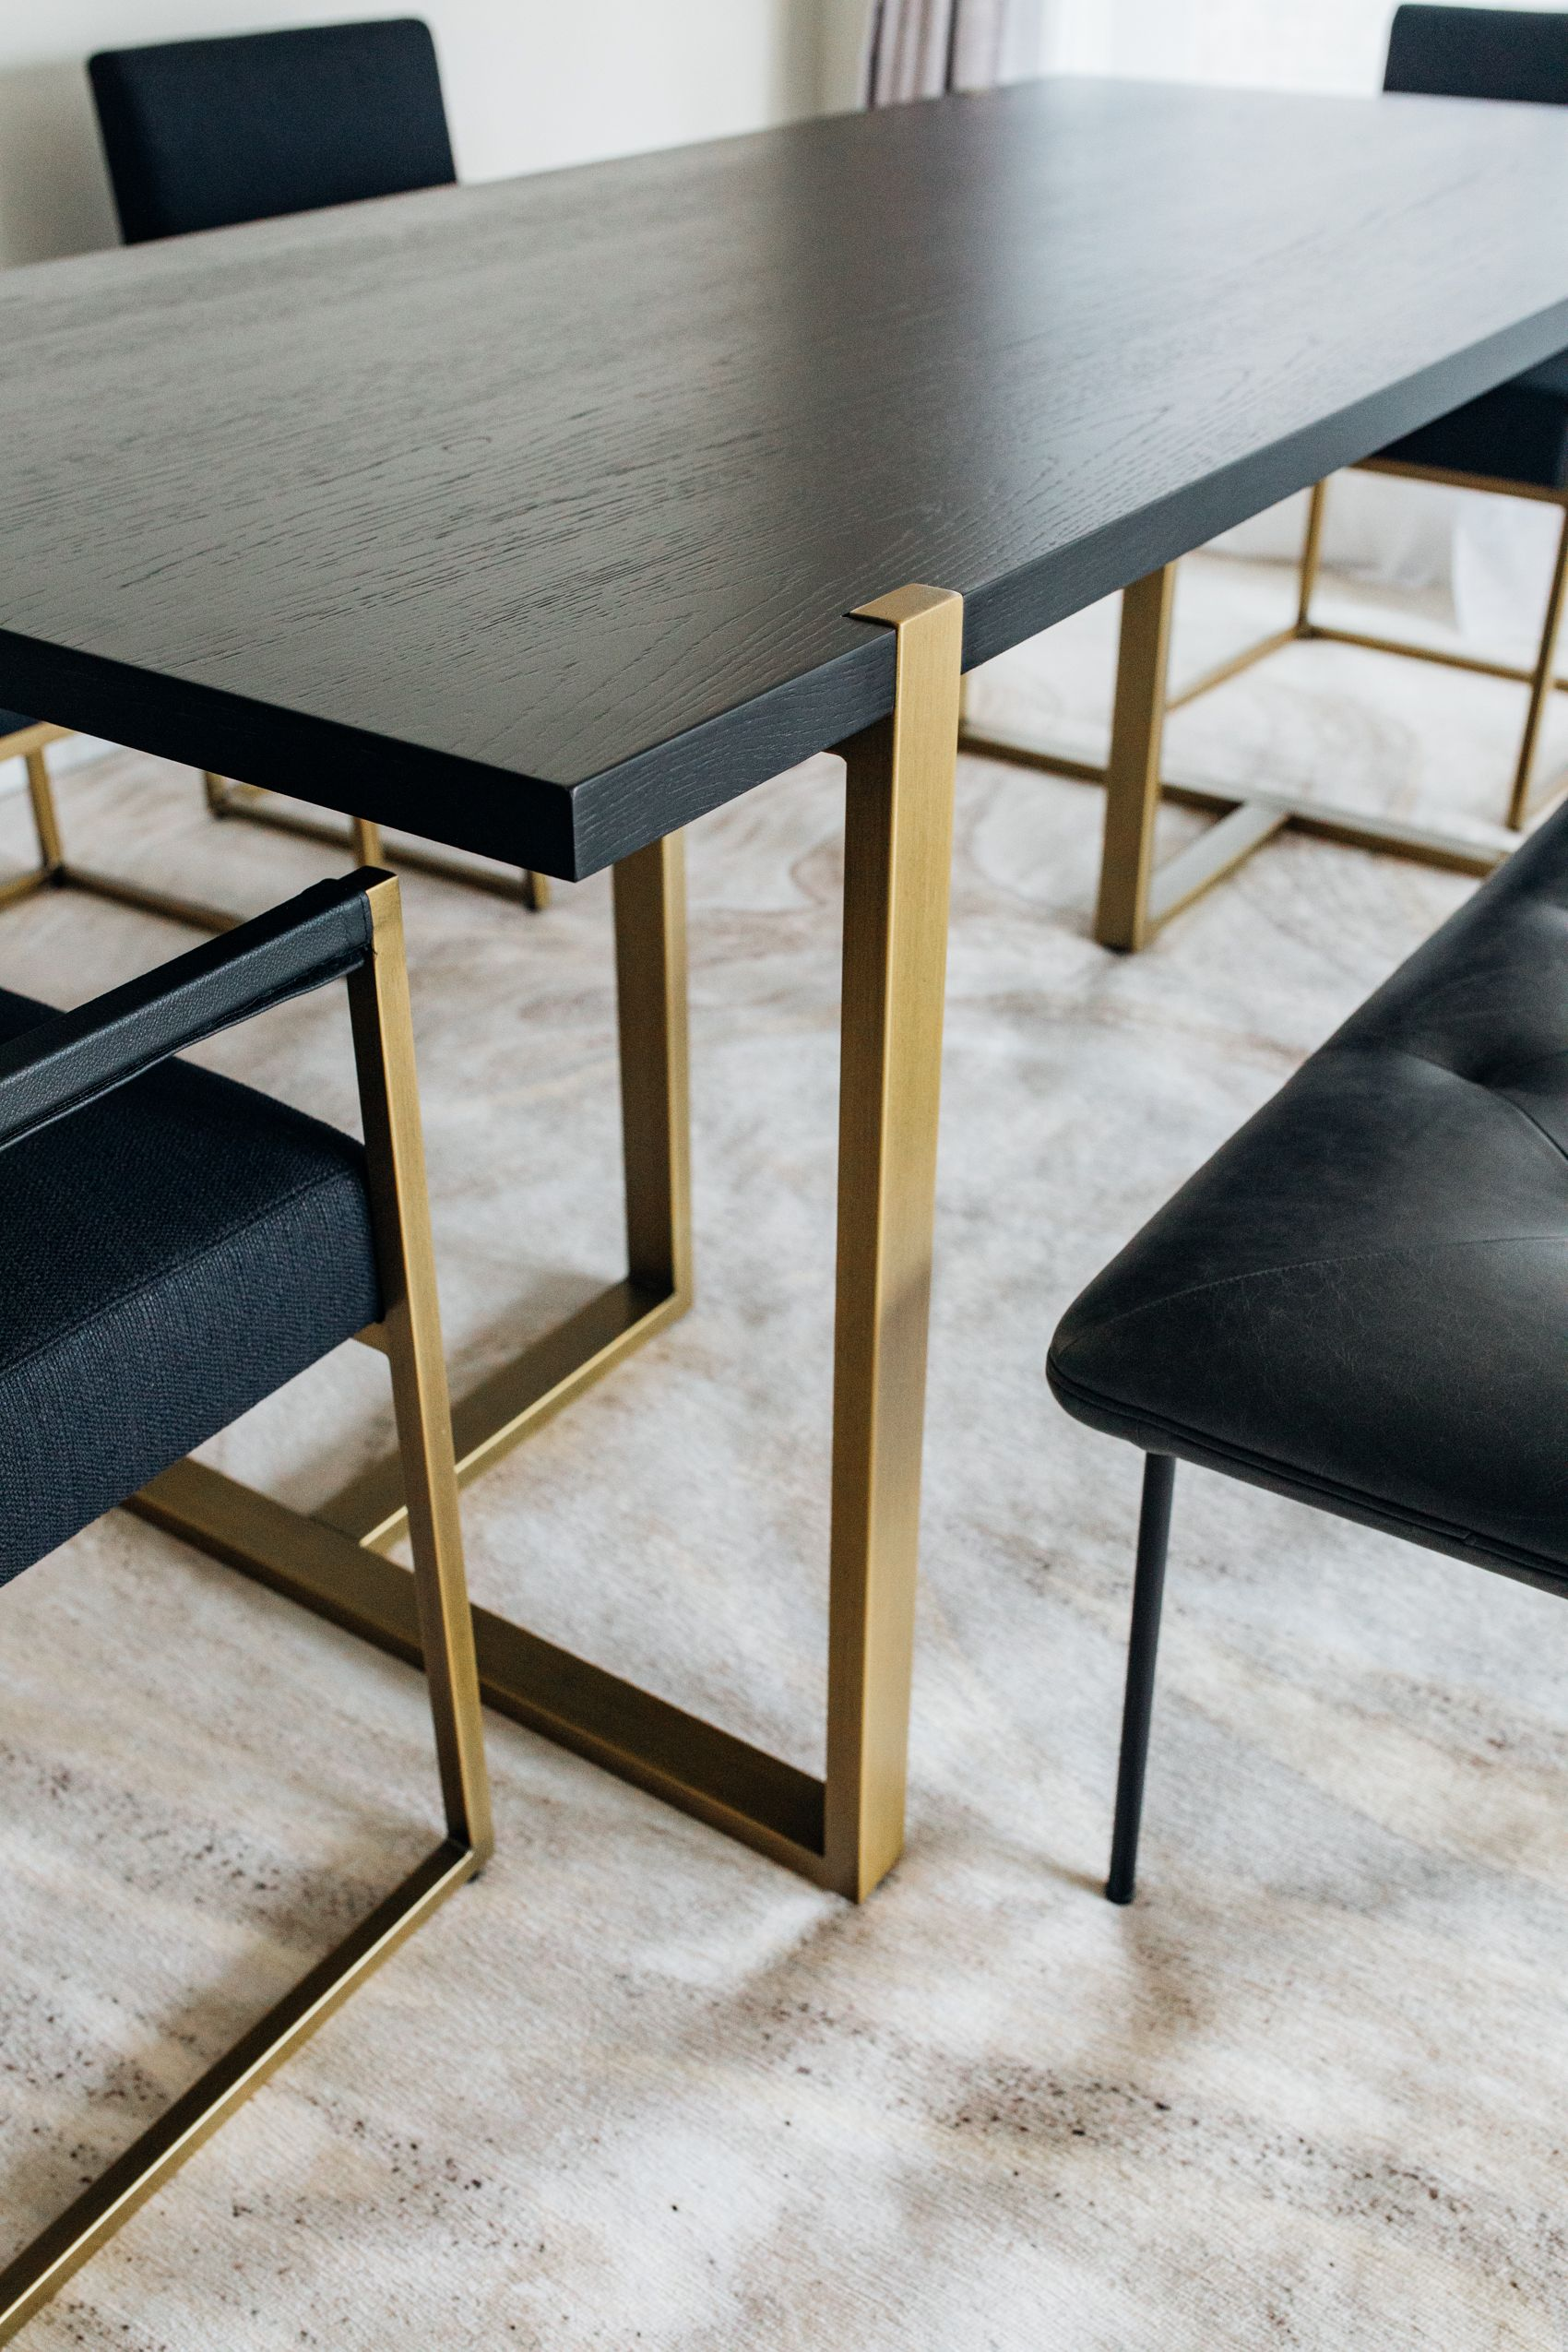 Article Oscuro Dining Table With Gold Legs For Eight With Matching